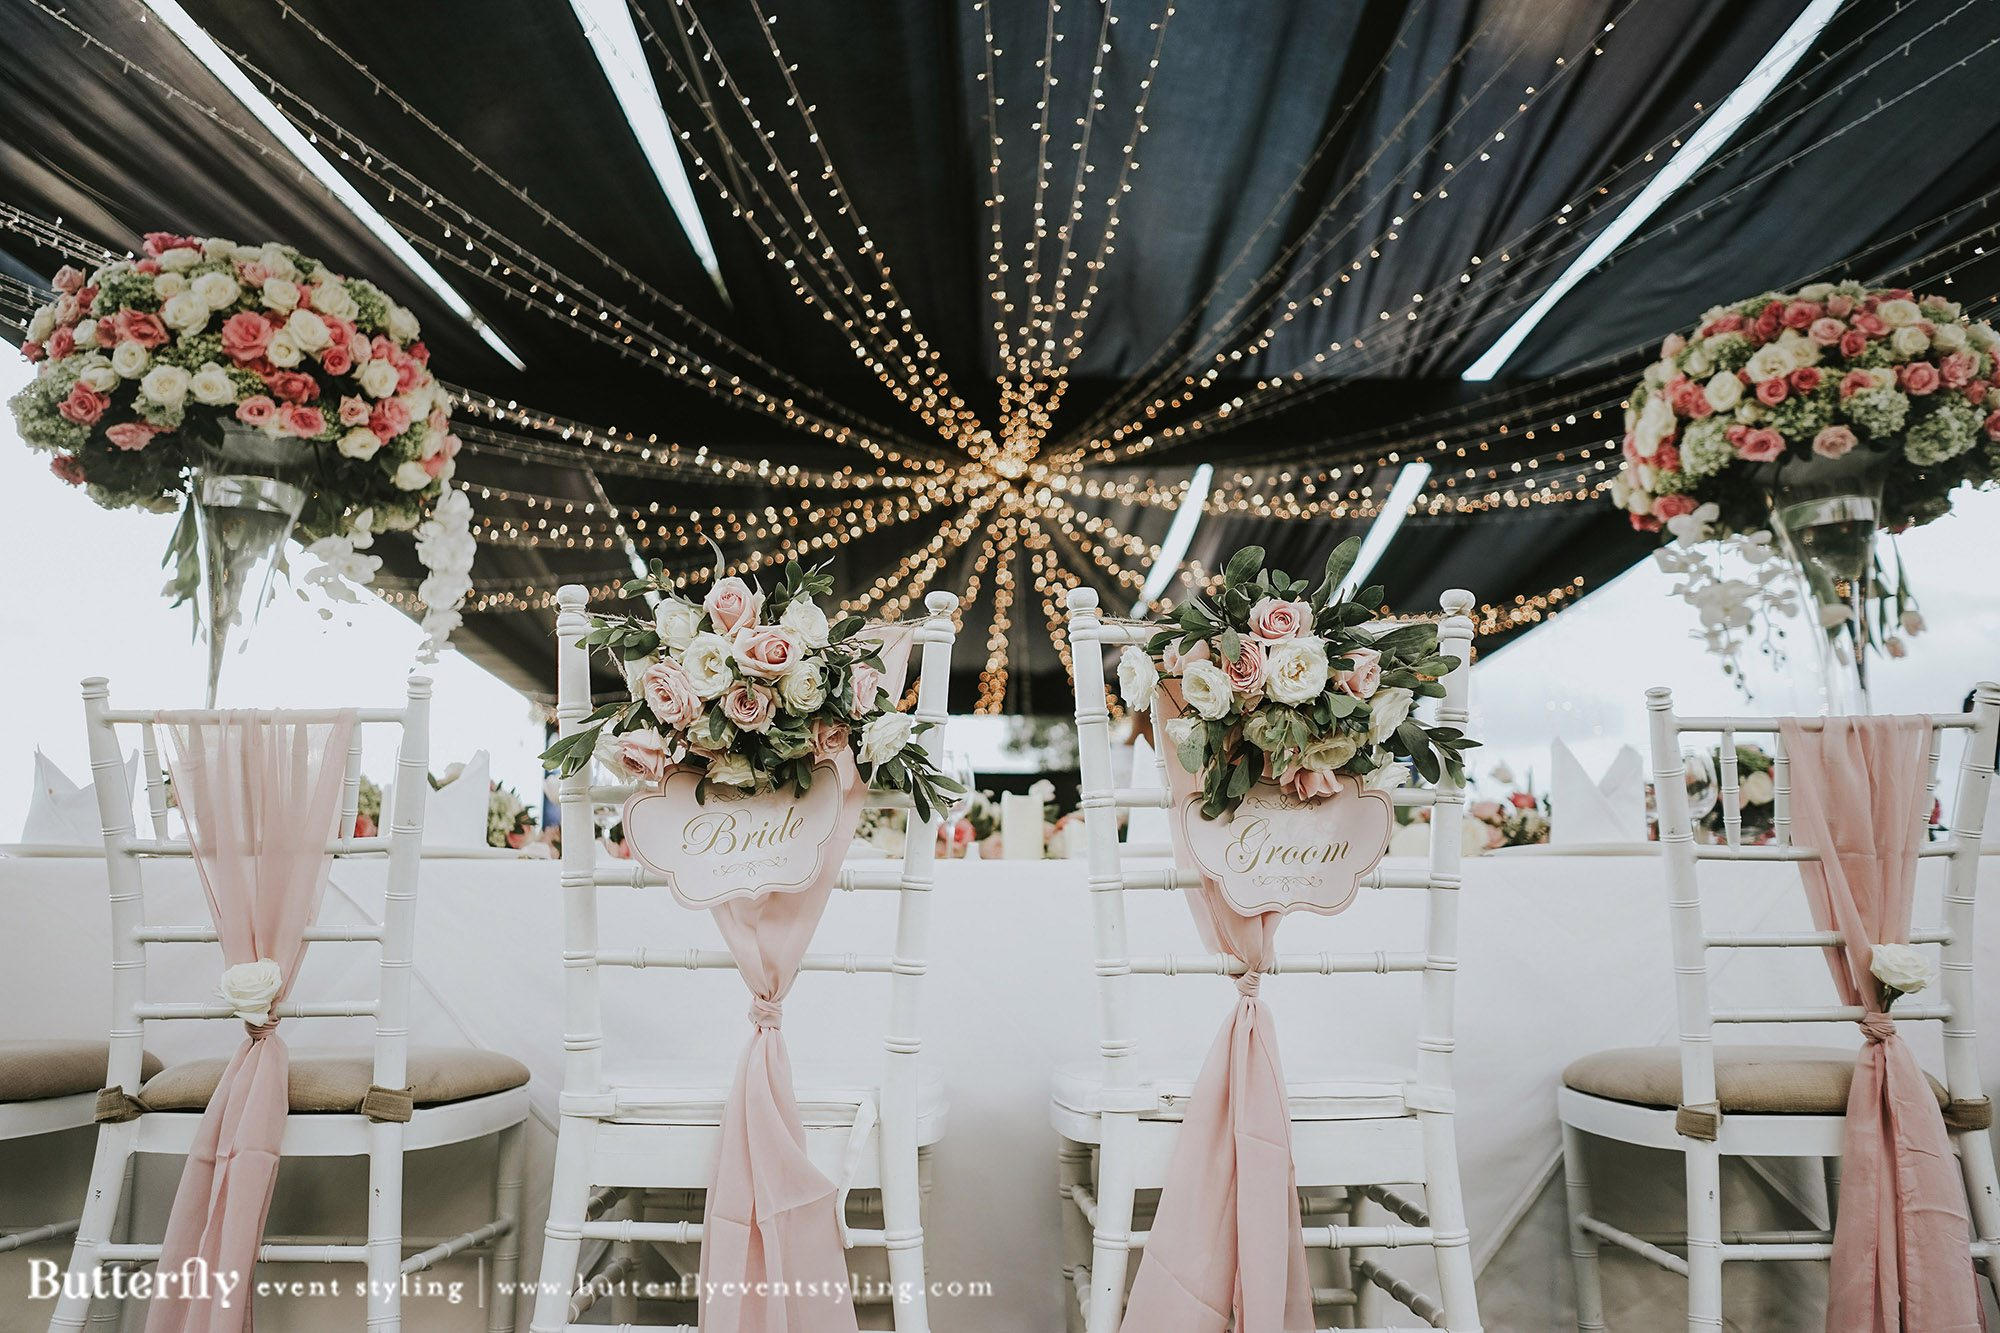 Wedding Decoration Idea Butterfly Event Styling